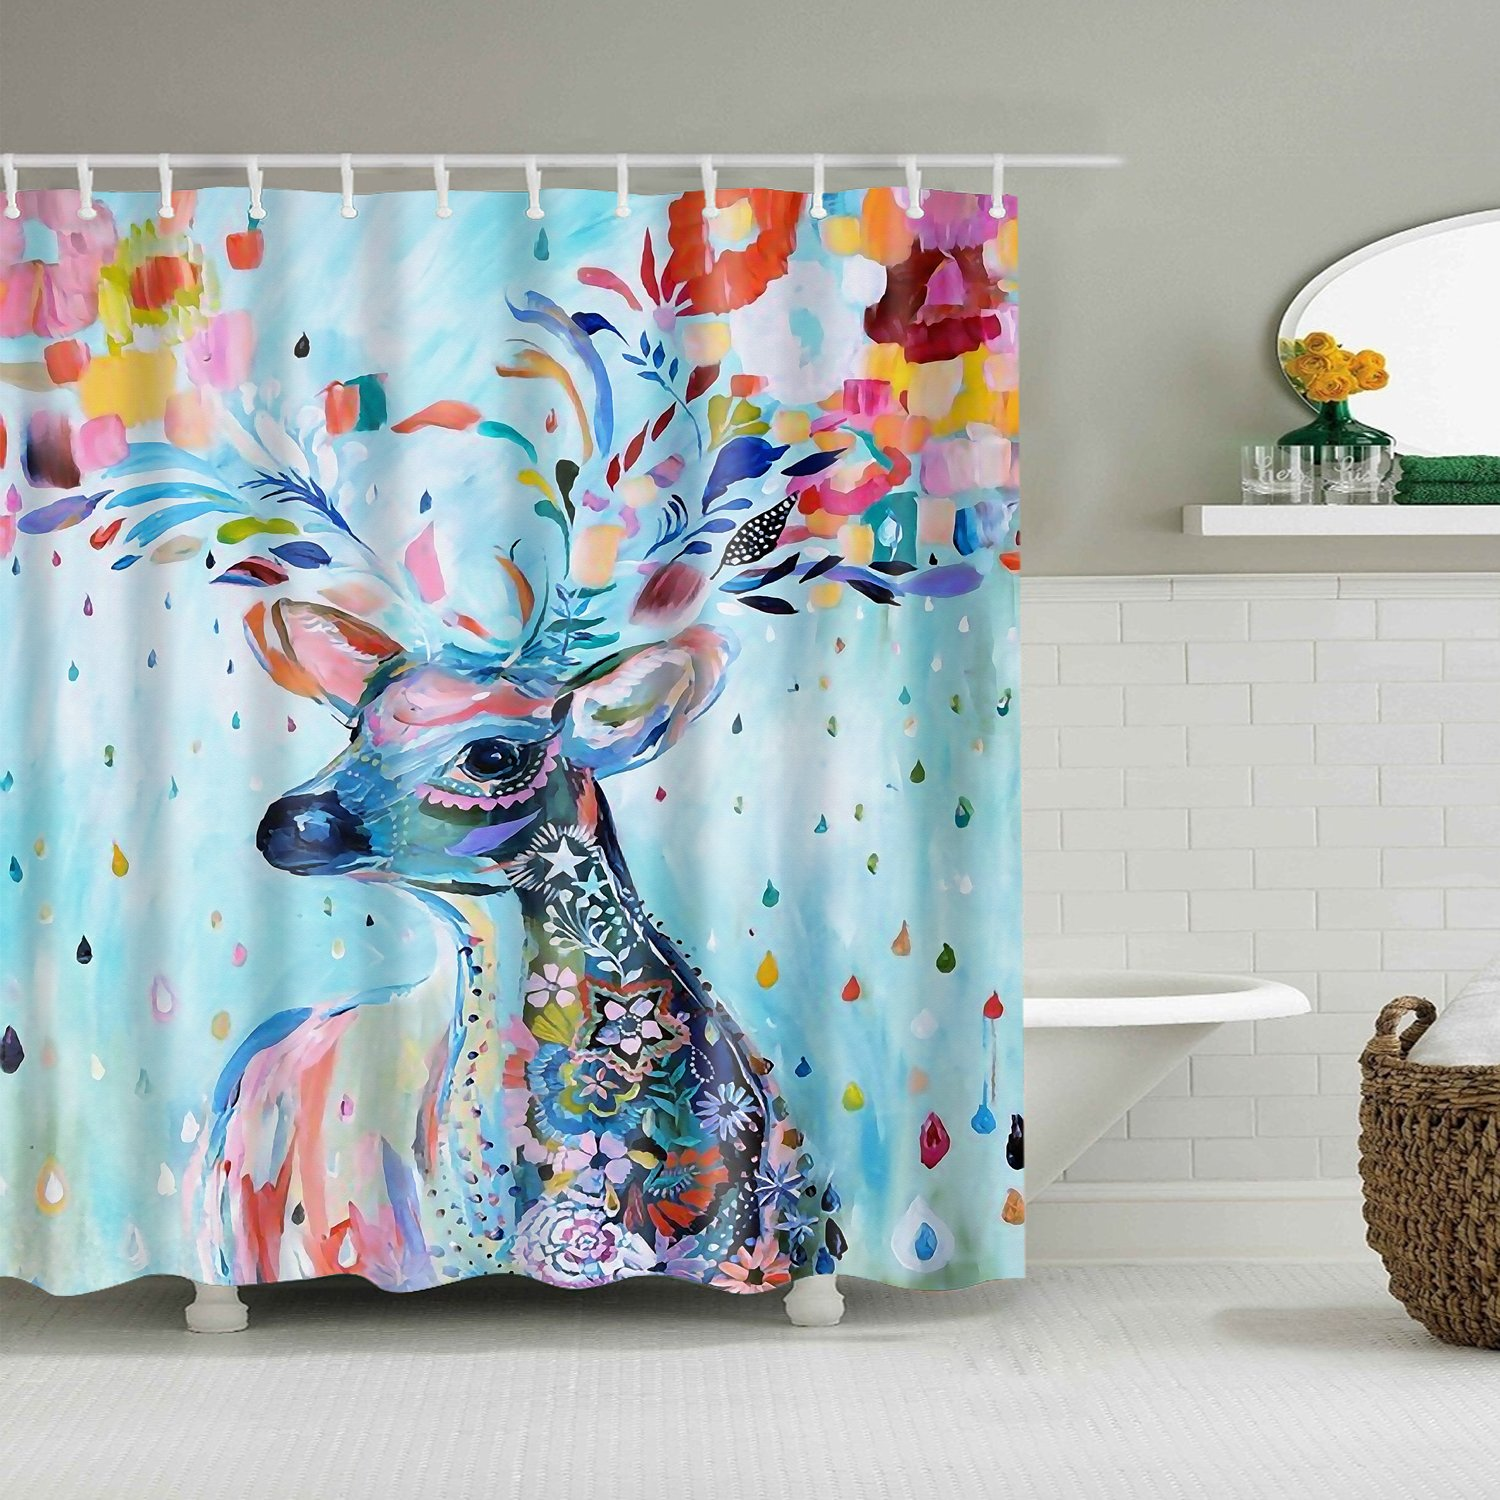 Colorful Deer Oil Painting Shower Curtain Antlers Tree Art